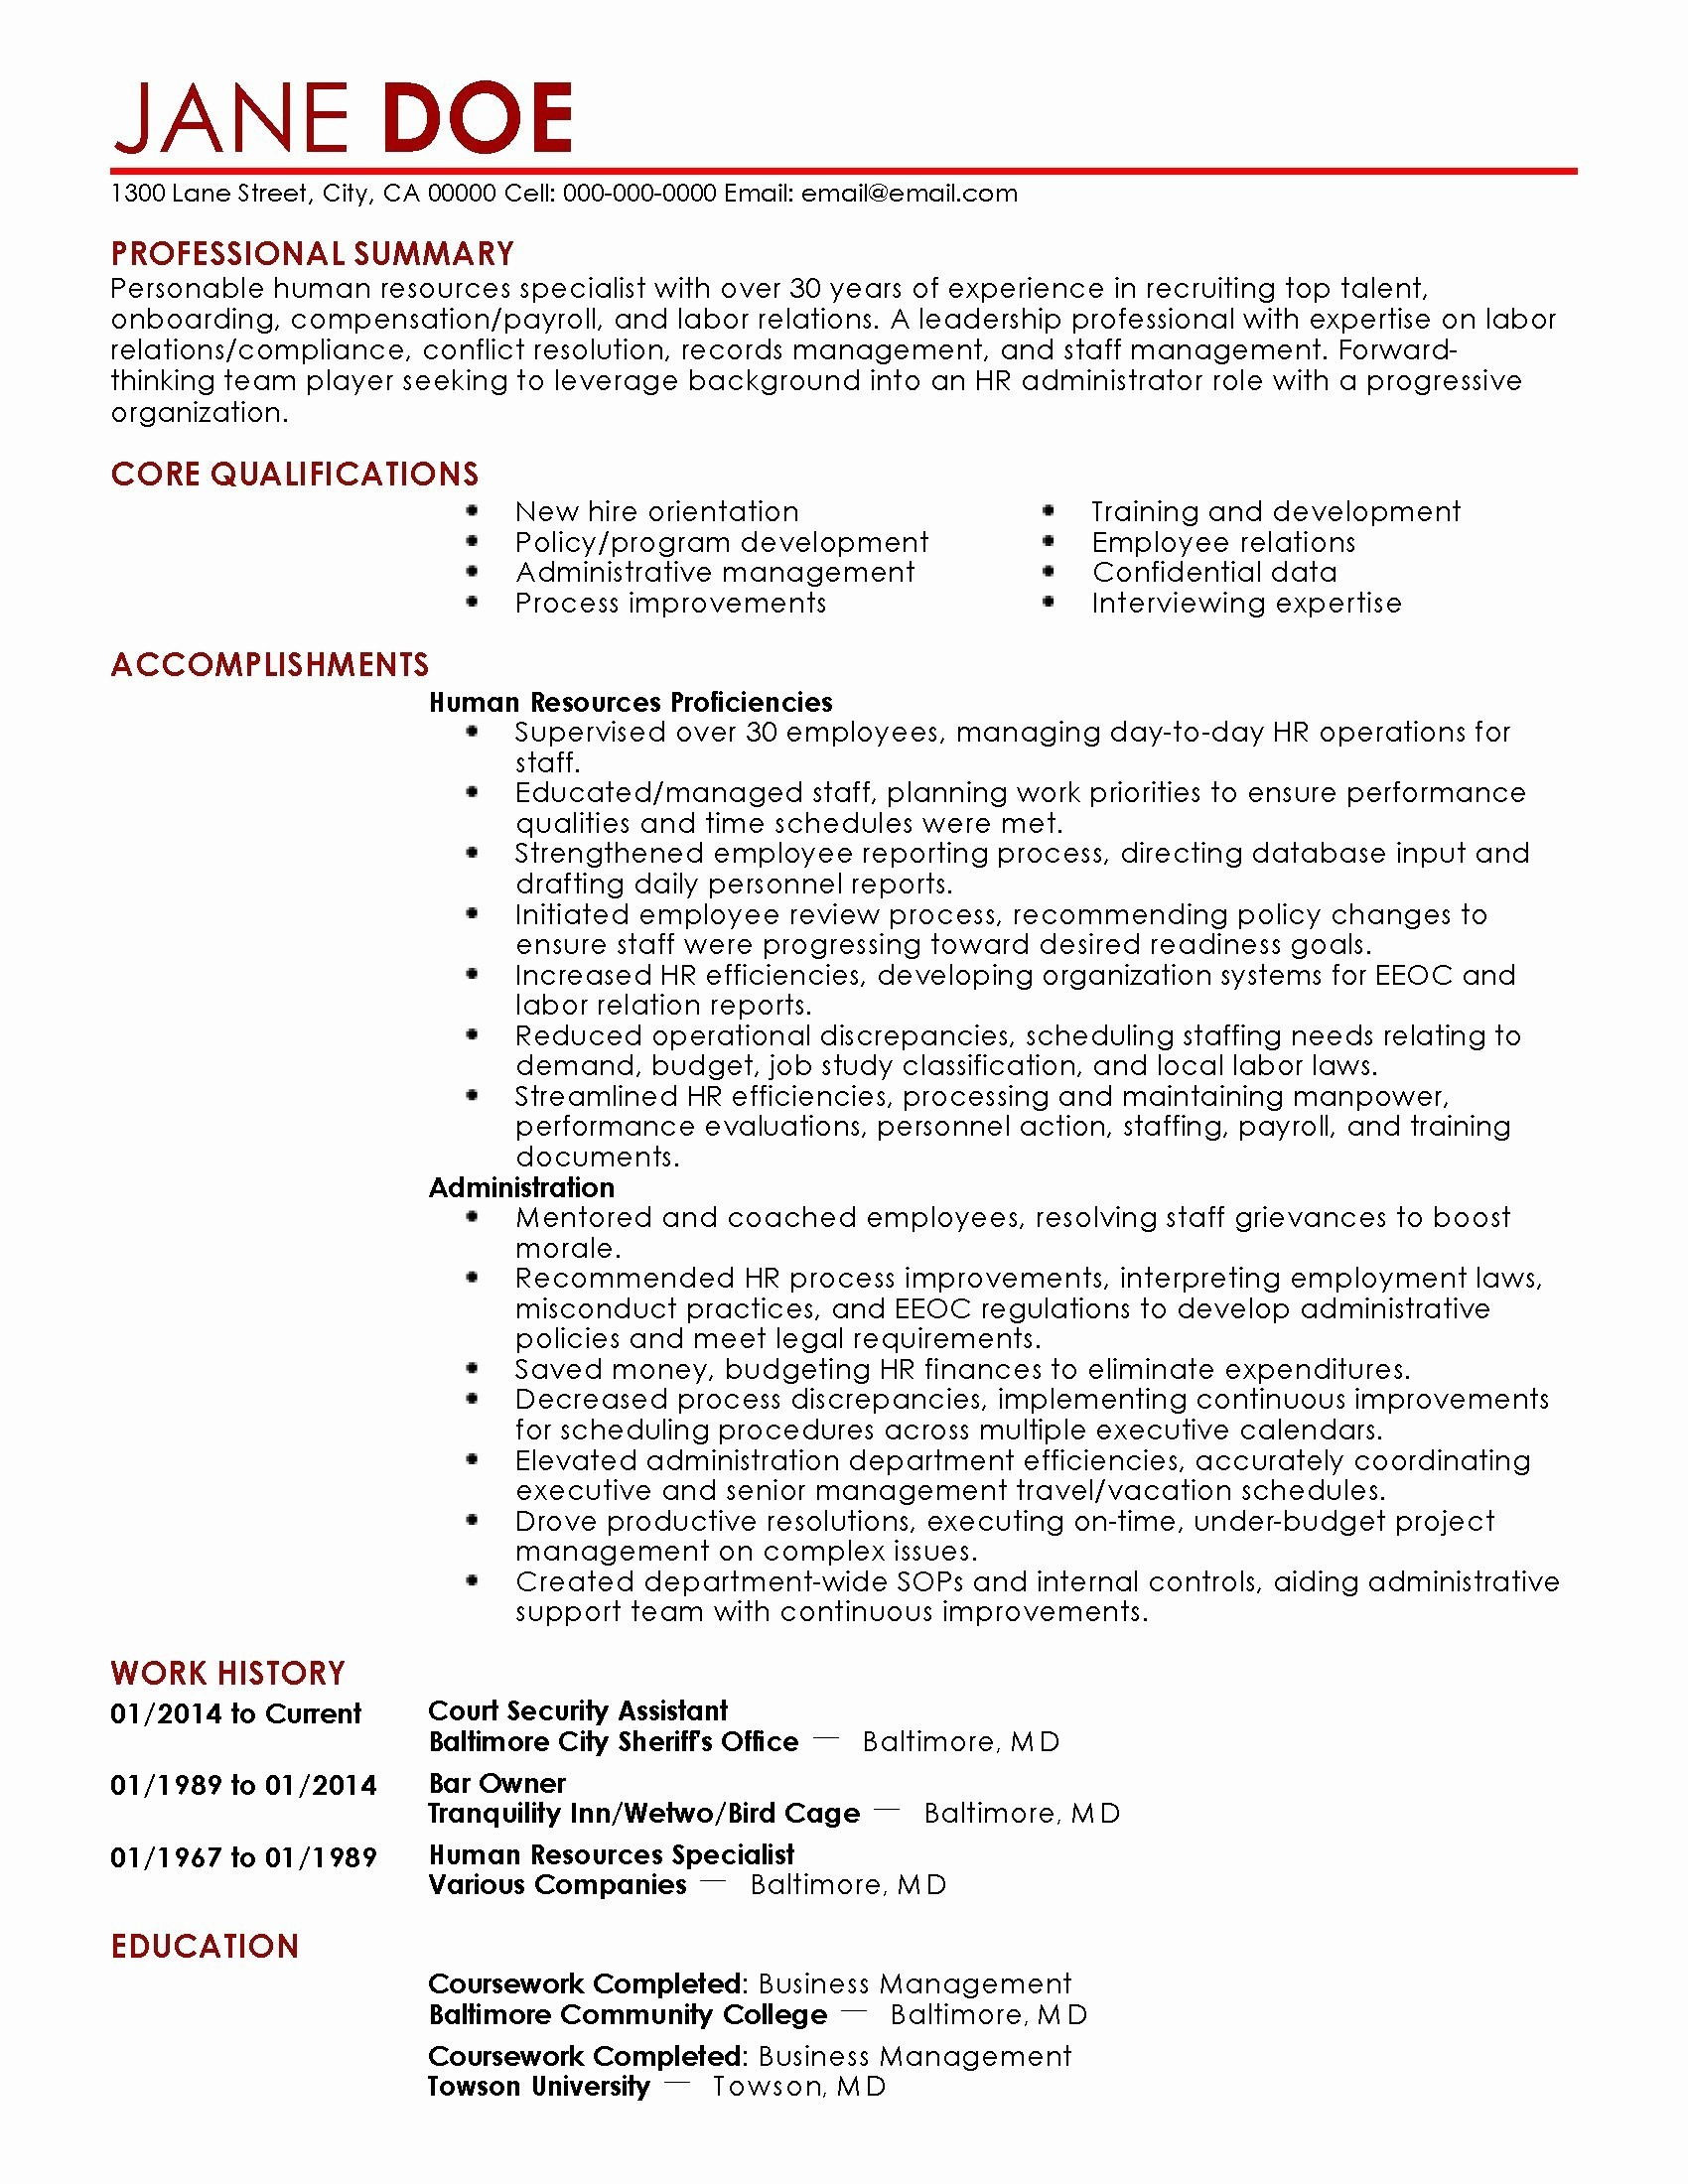 Receptionist Resume Template - Medical Secretary Resume Sample Best Medical Receptionist Resume